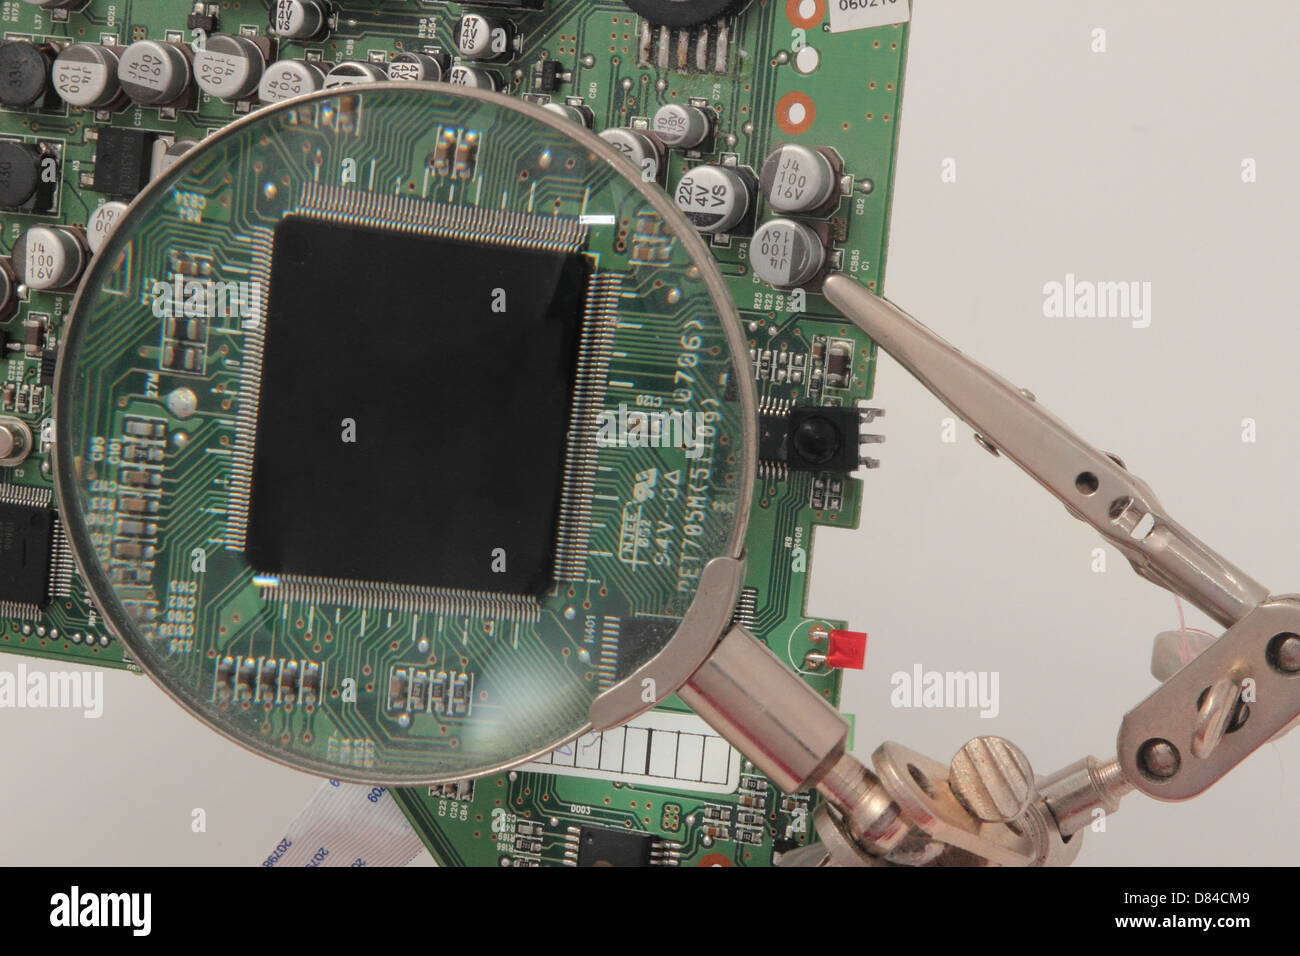 Electronic Board Stock Photos Images Alamy Circuit Assembly Buy Circuits Boardcircuit Components On A Base Image